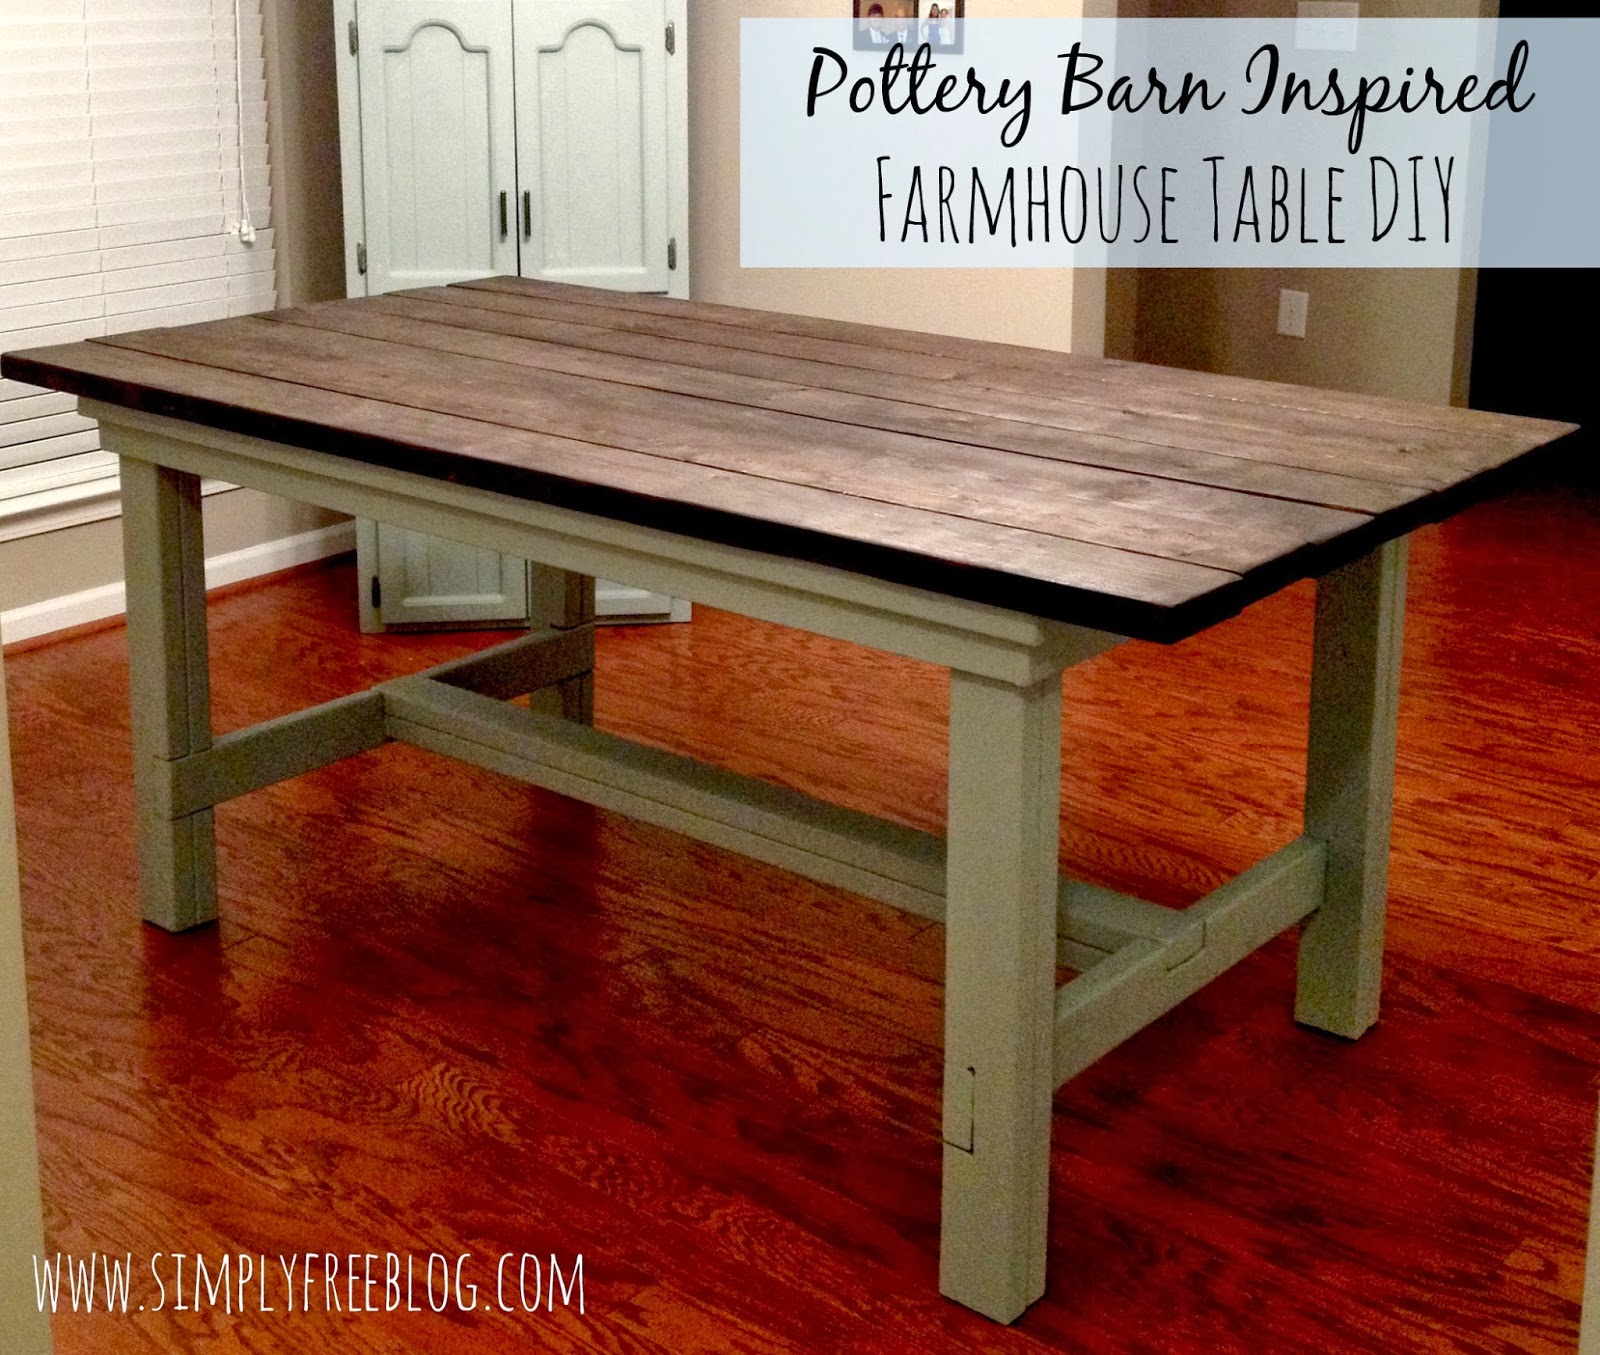 Pottery Barn Farmhouse Furniture: Pottery Barn Inspired Farmhouse Table